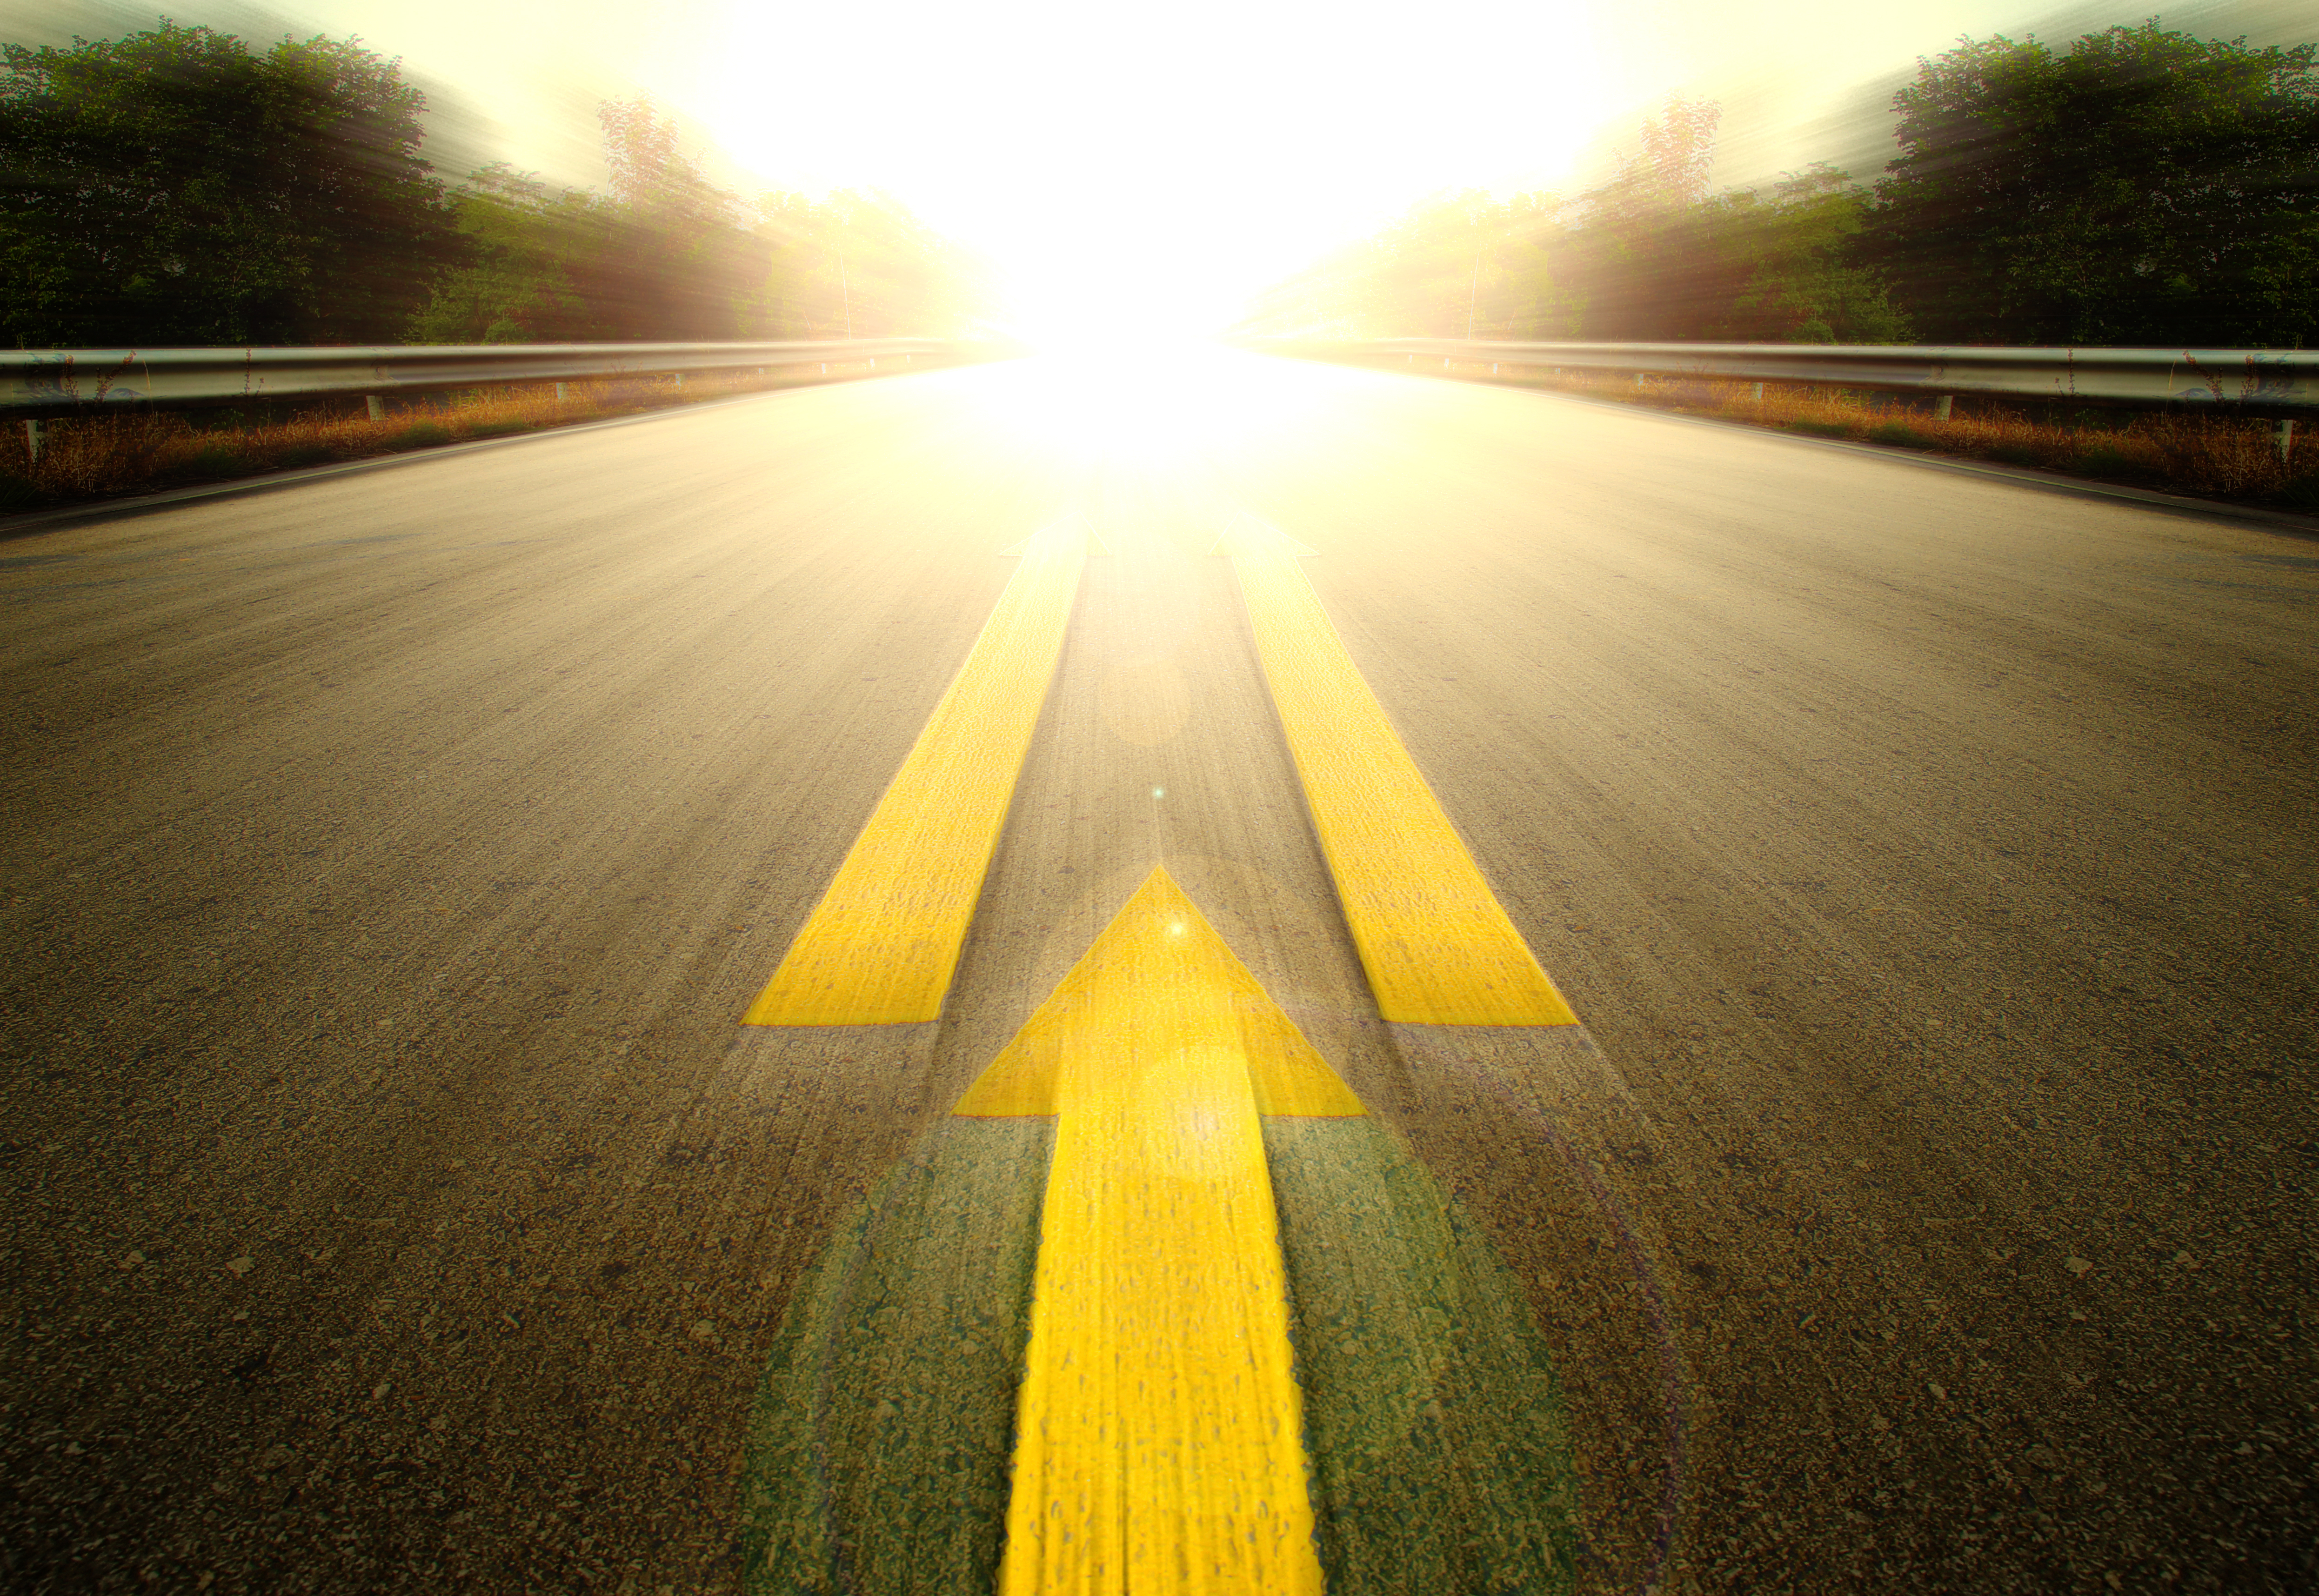 Road With Painted Yellow arrow Line.